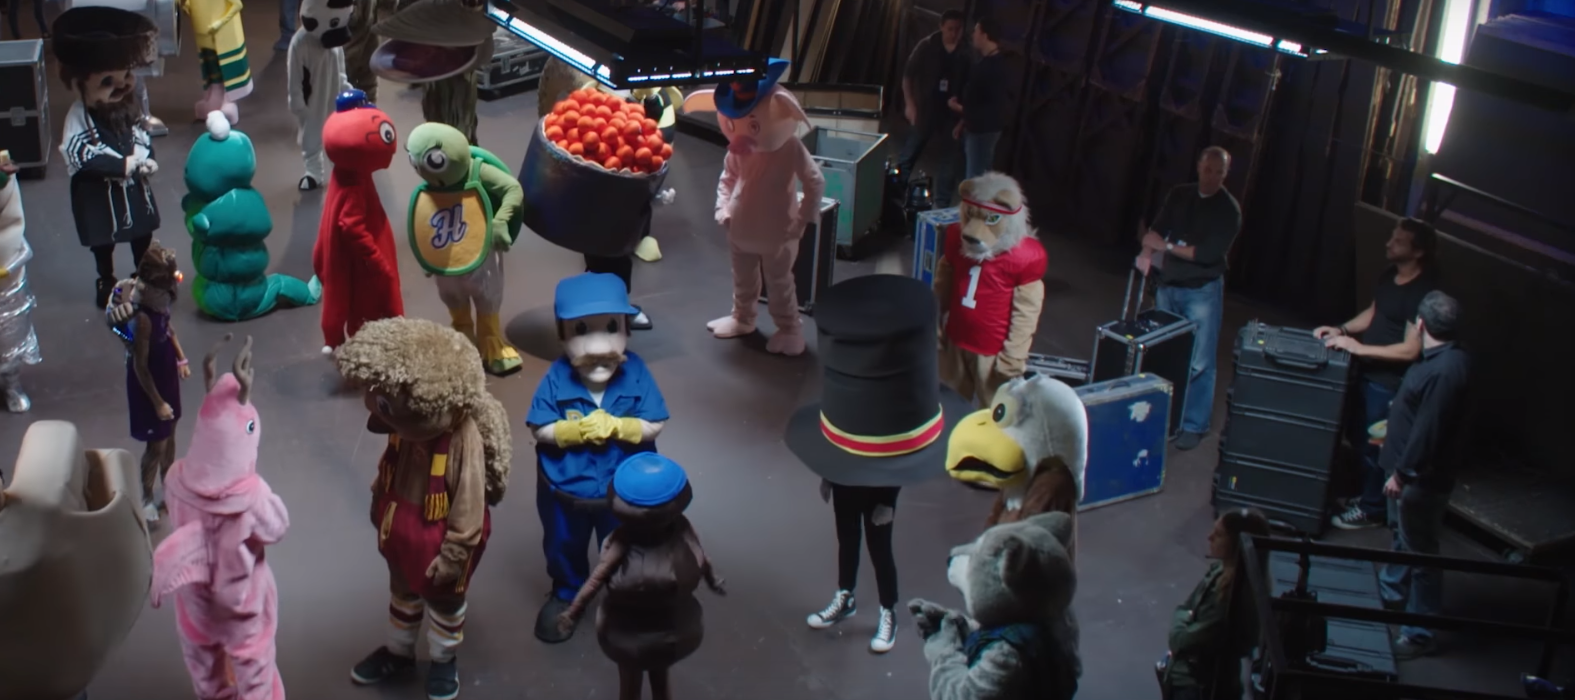 'Mascots' is going to be Netflix's next great comedy